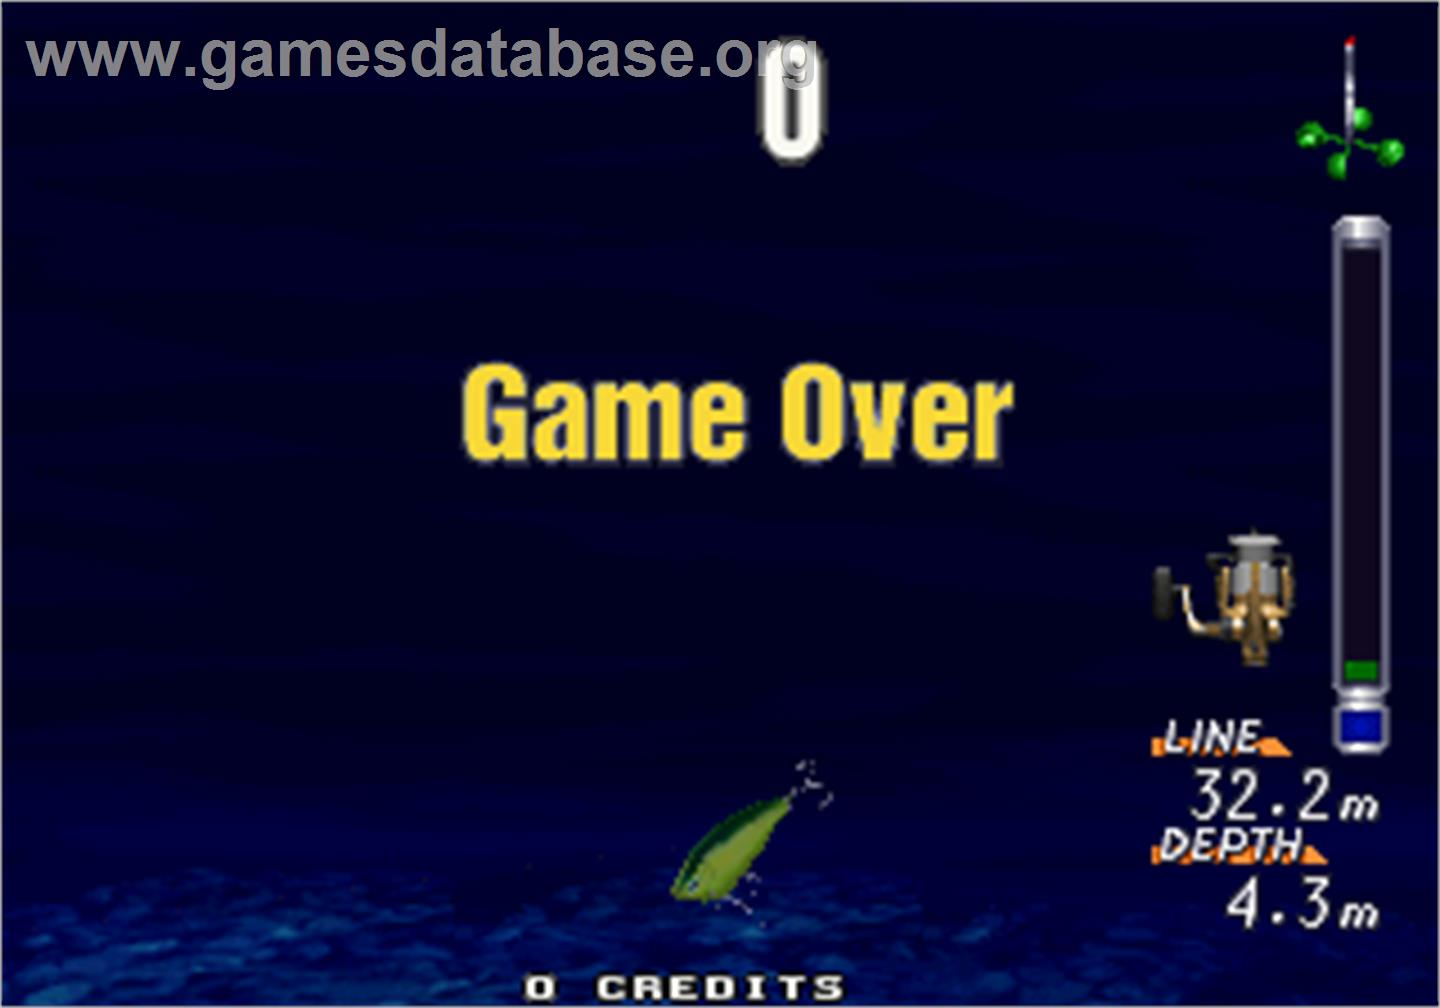 Sea bass fishing arcade games database for Fish arcade game